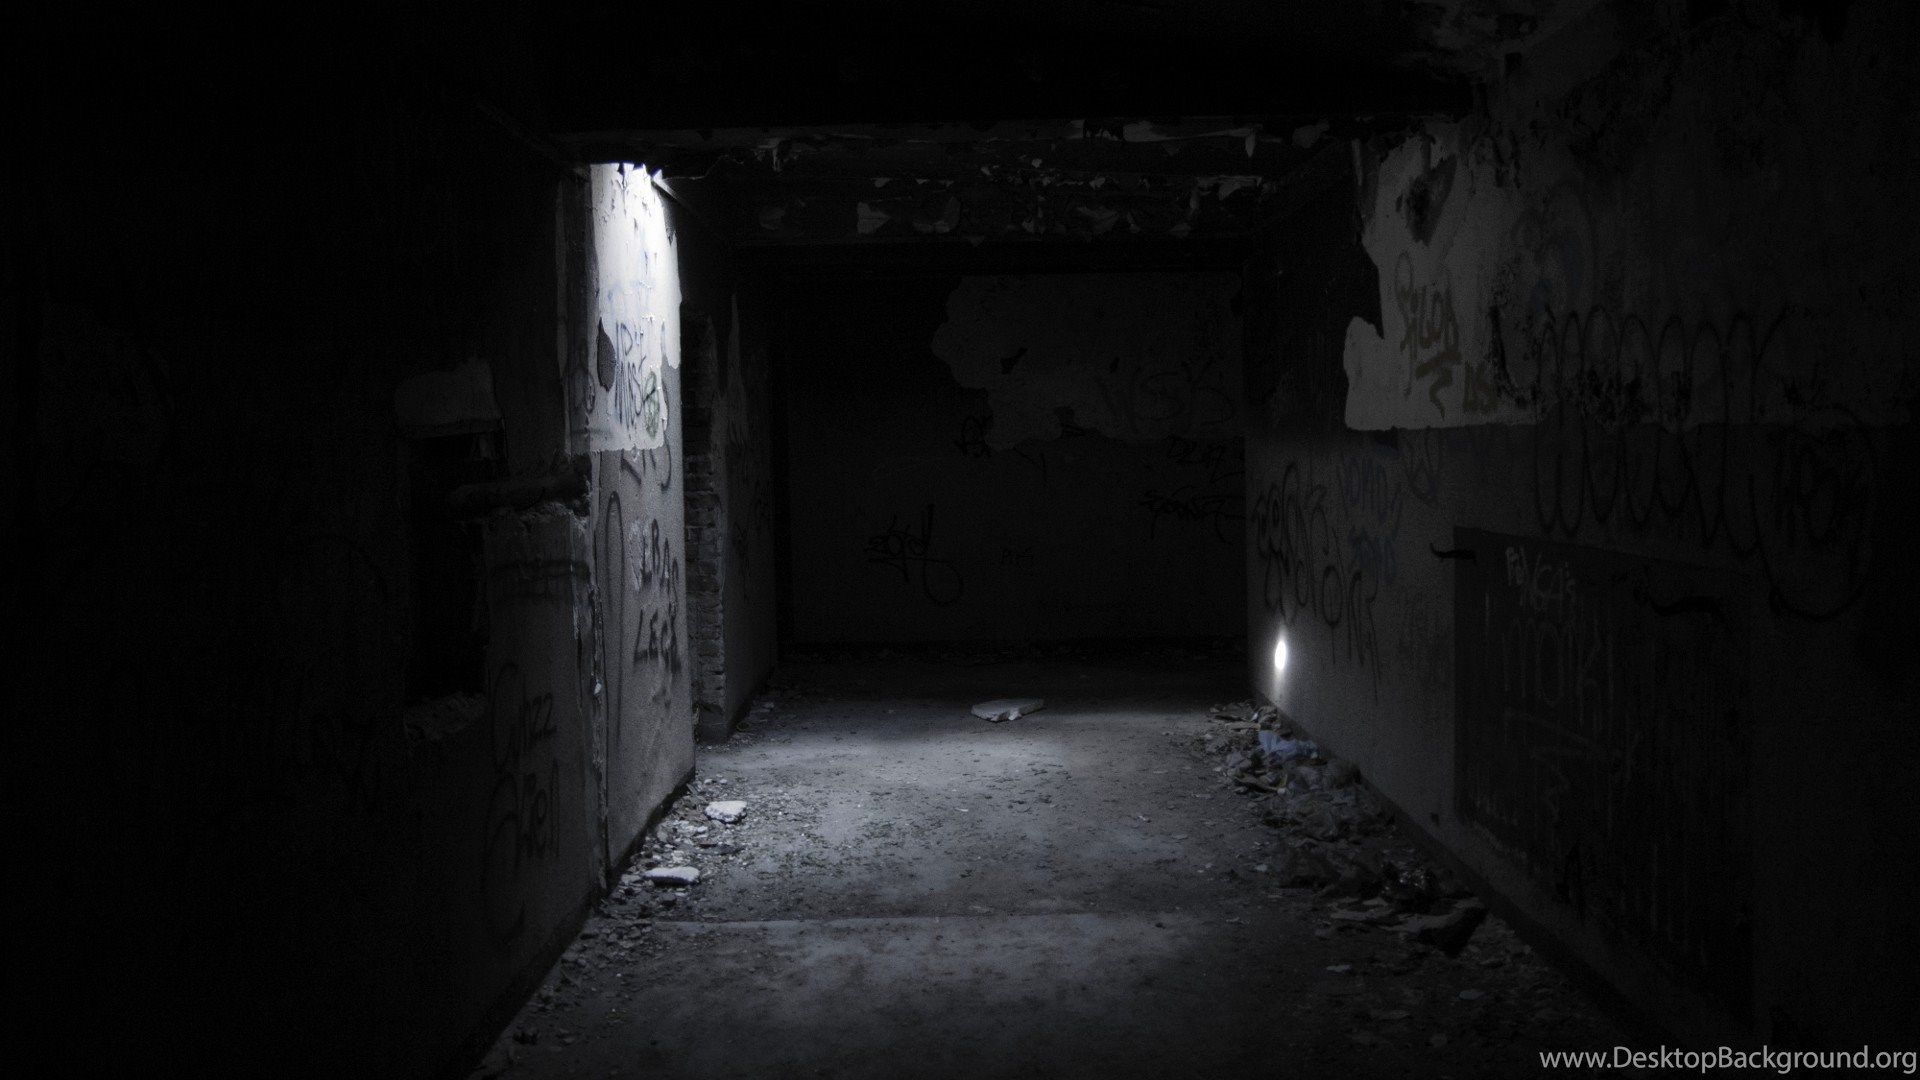 Dark Scary Monochrome Tunnel Wallpapers Desktop Background